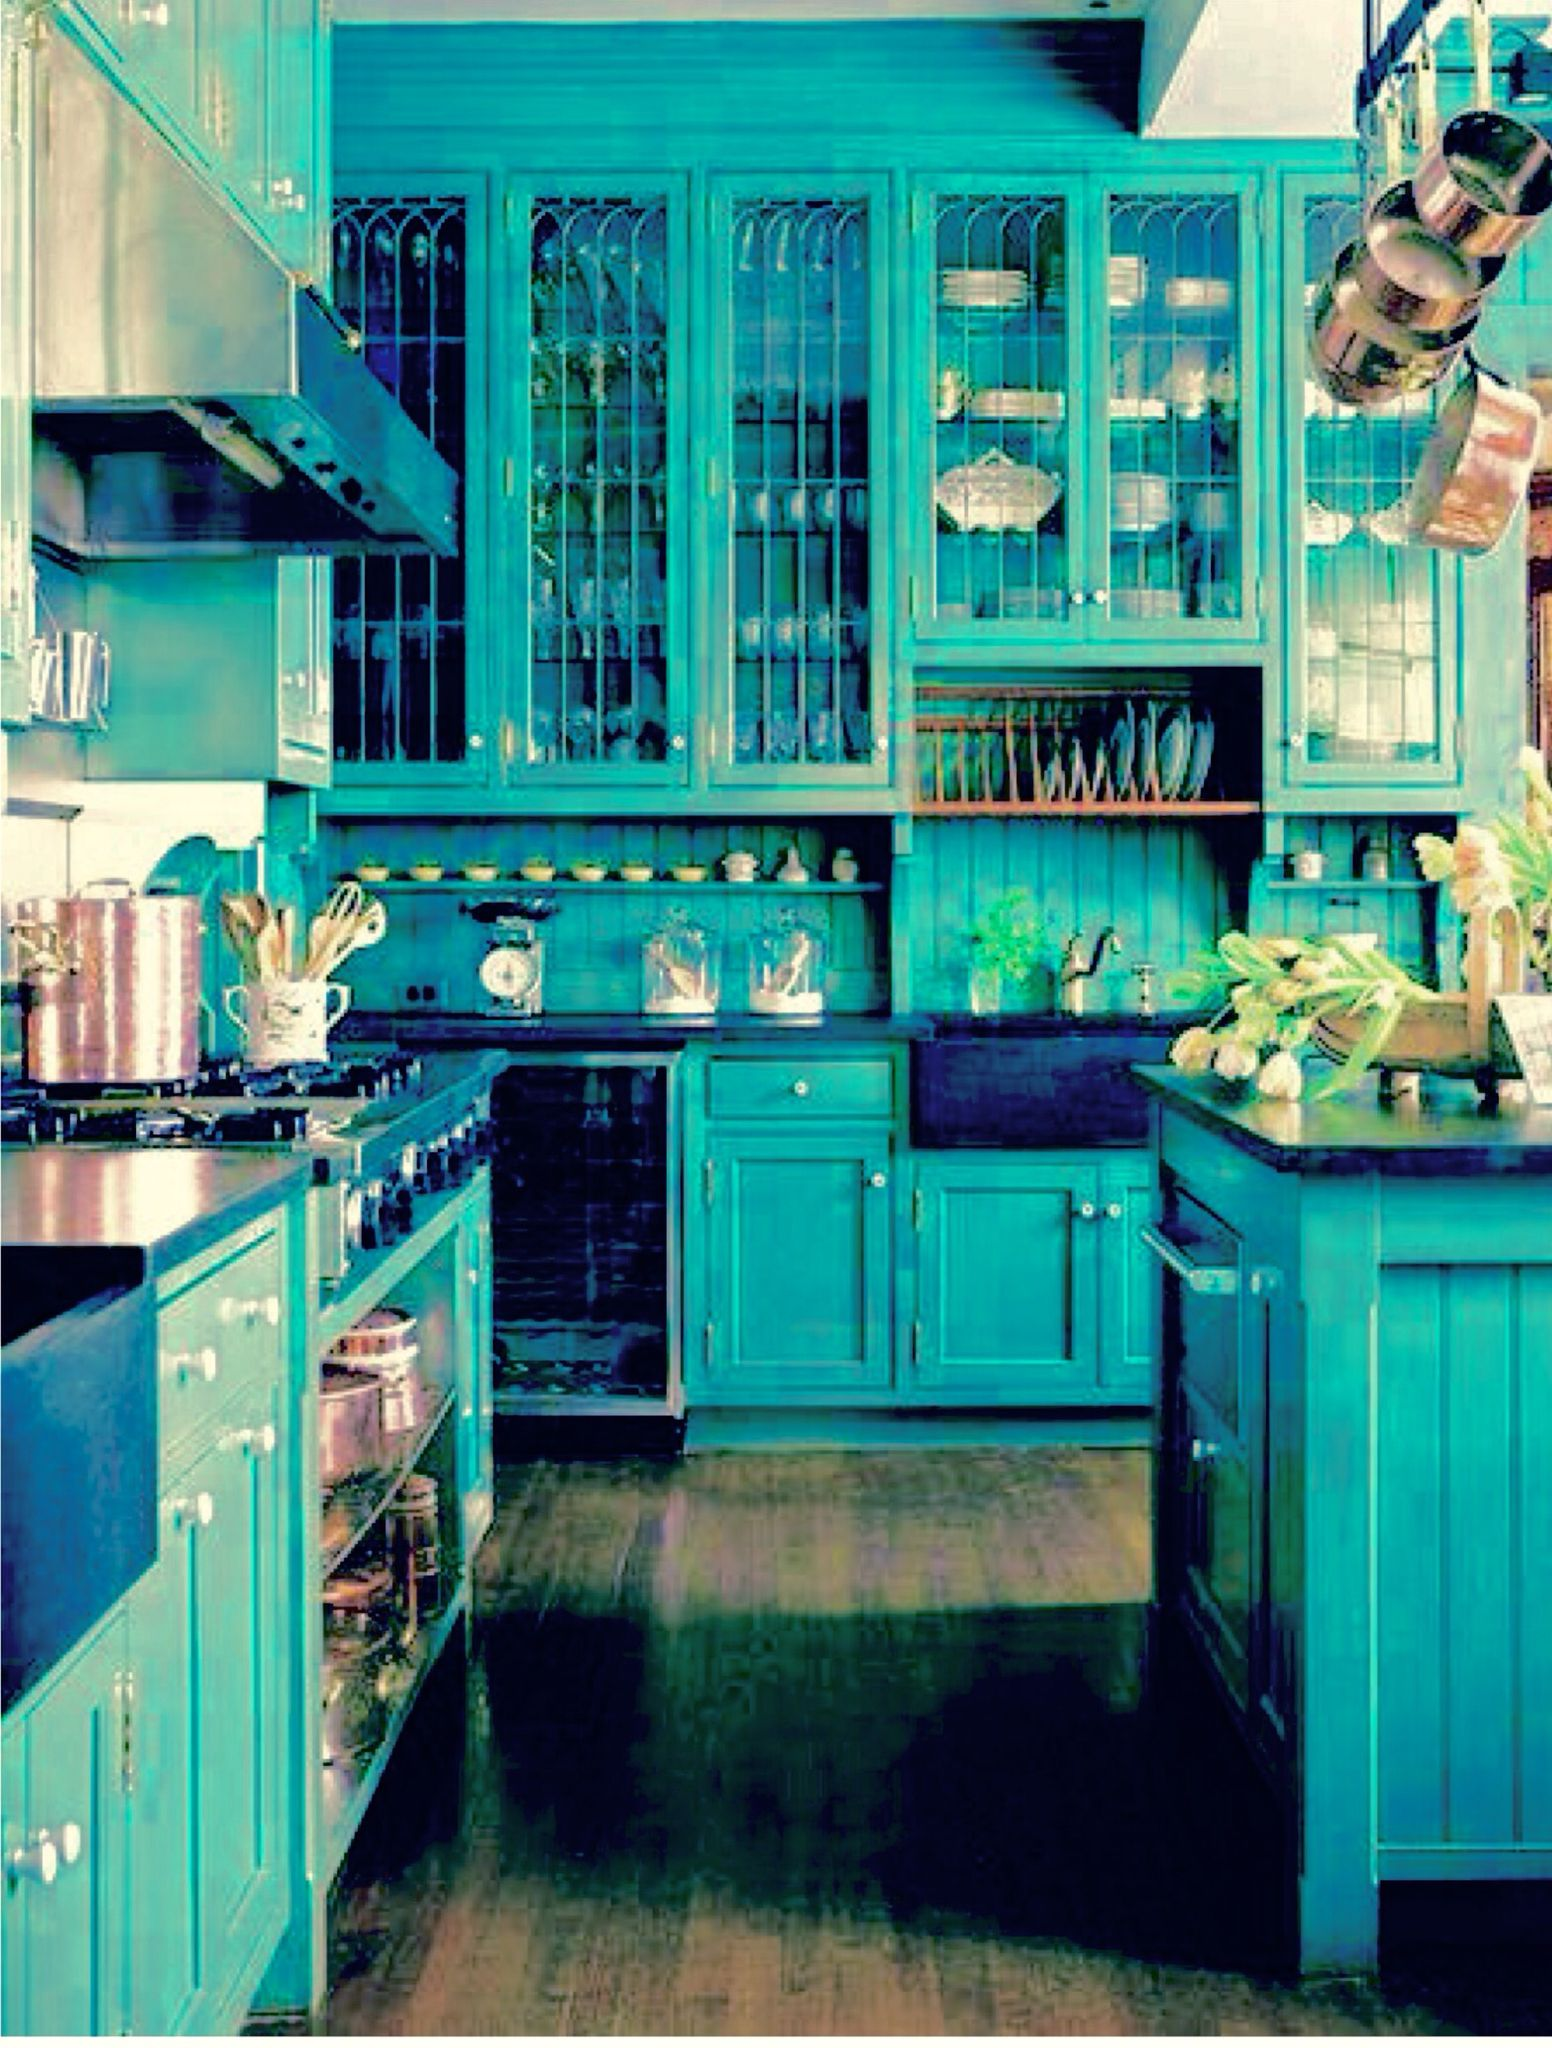 Very pretty kitchen decor in Tiffany blue